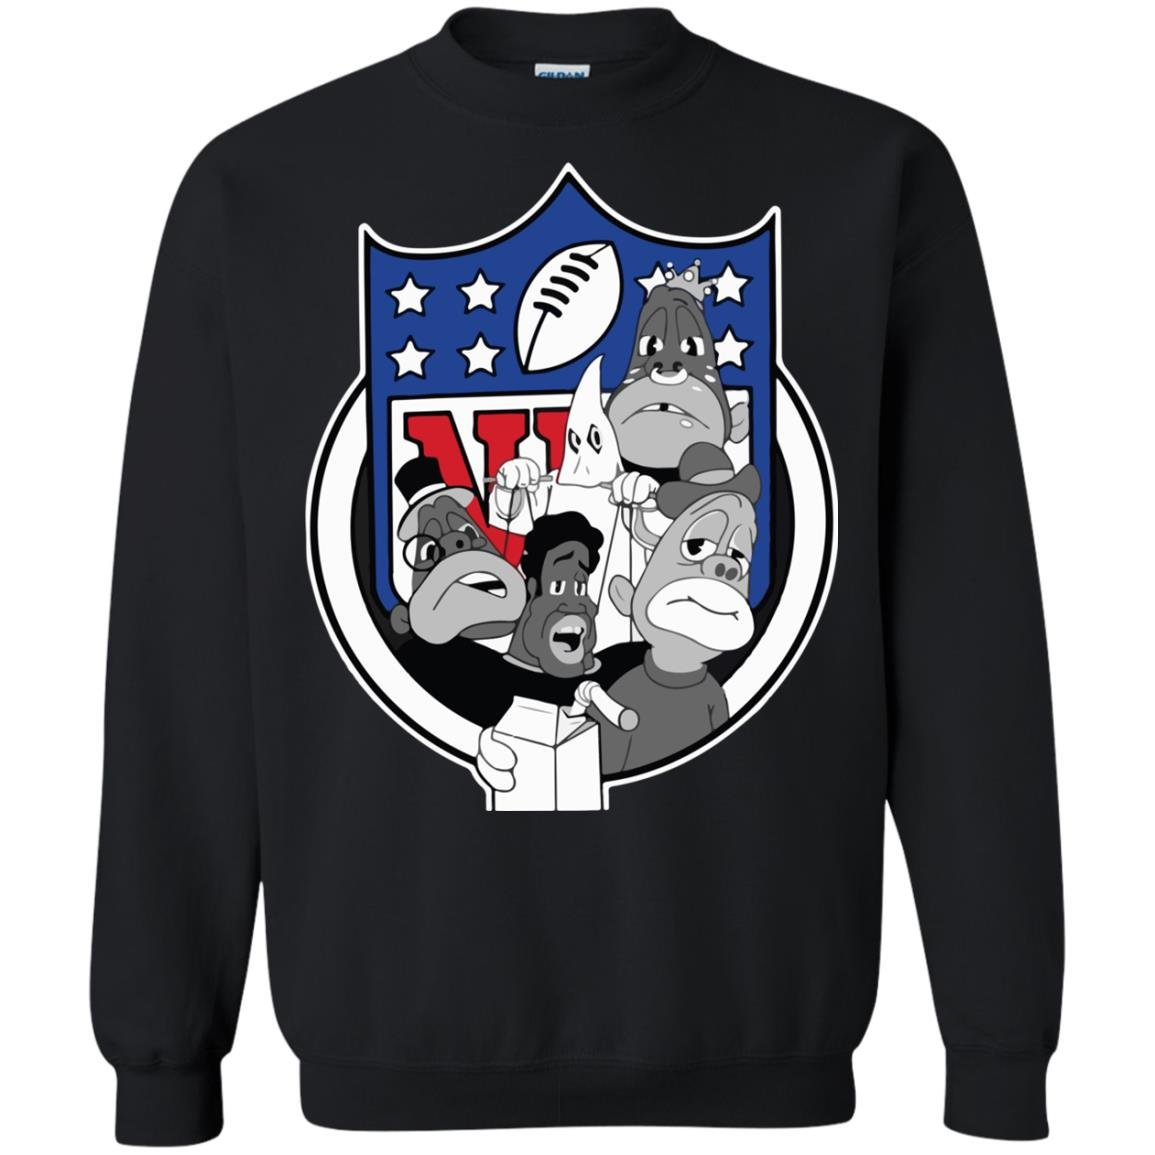 image 1492 - Snoop Dog The Story of O.J NFL shirt & sweatshirt